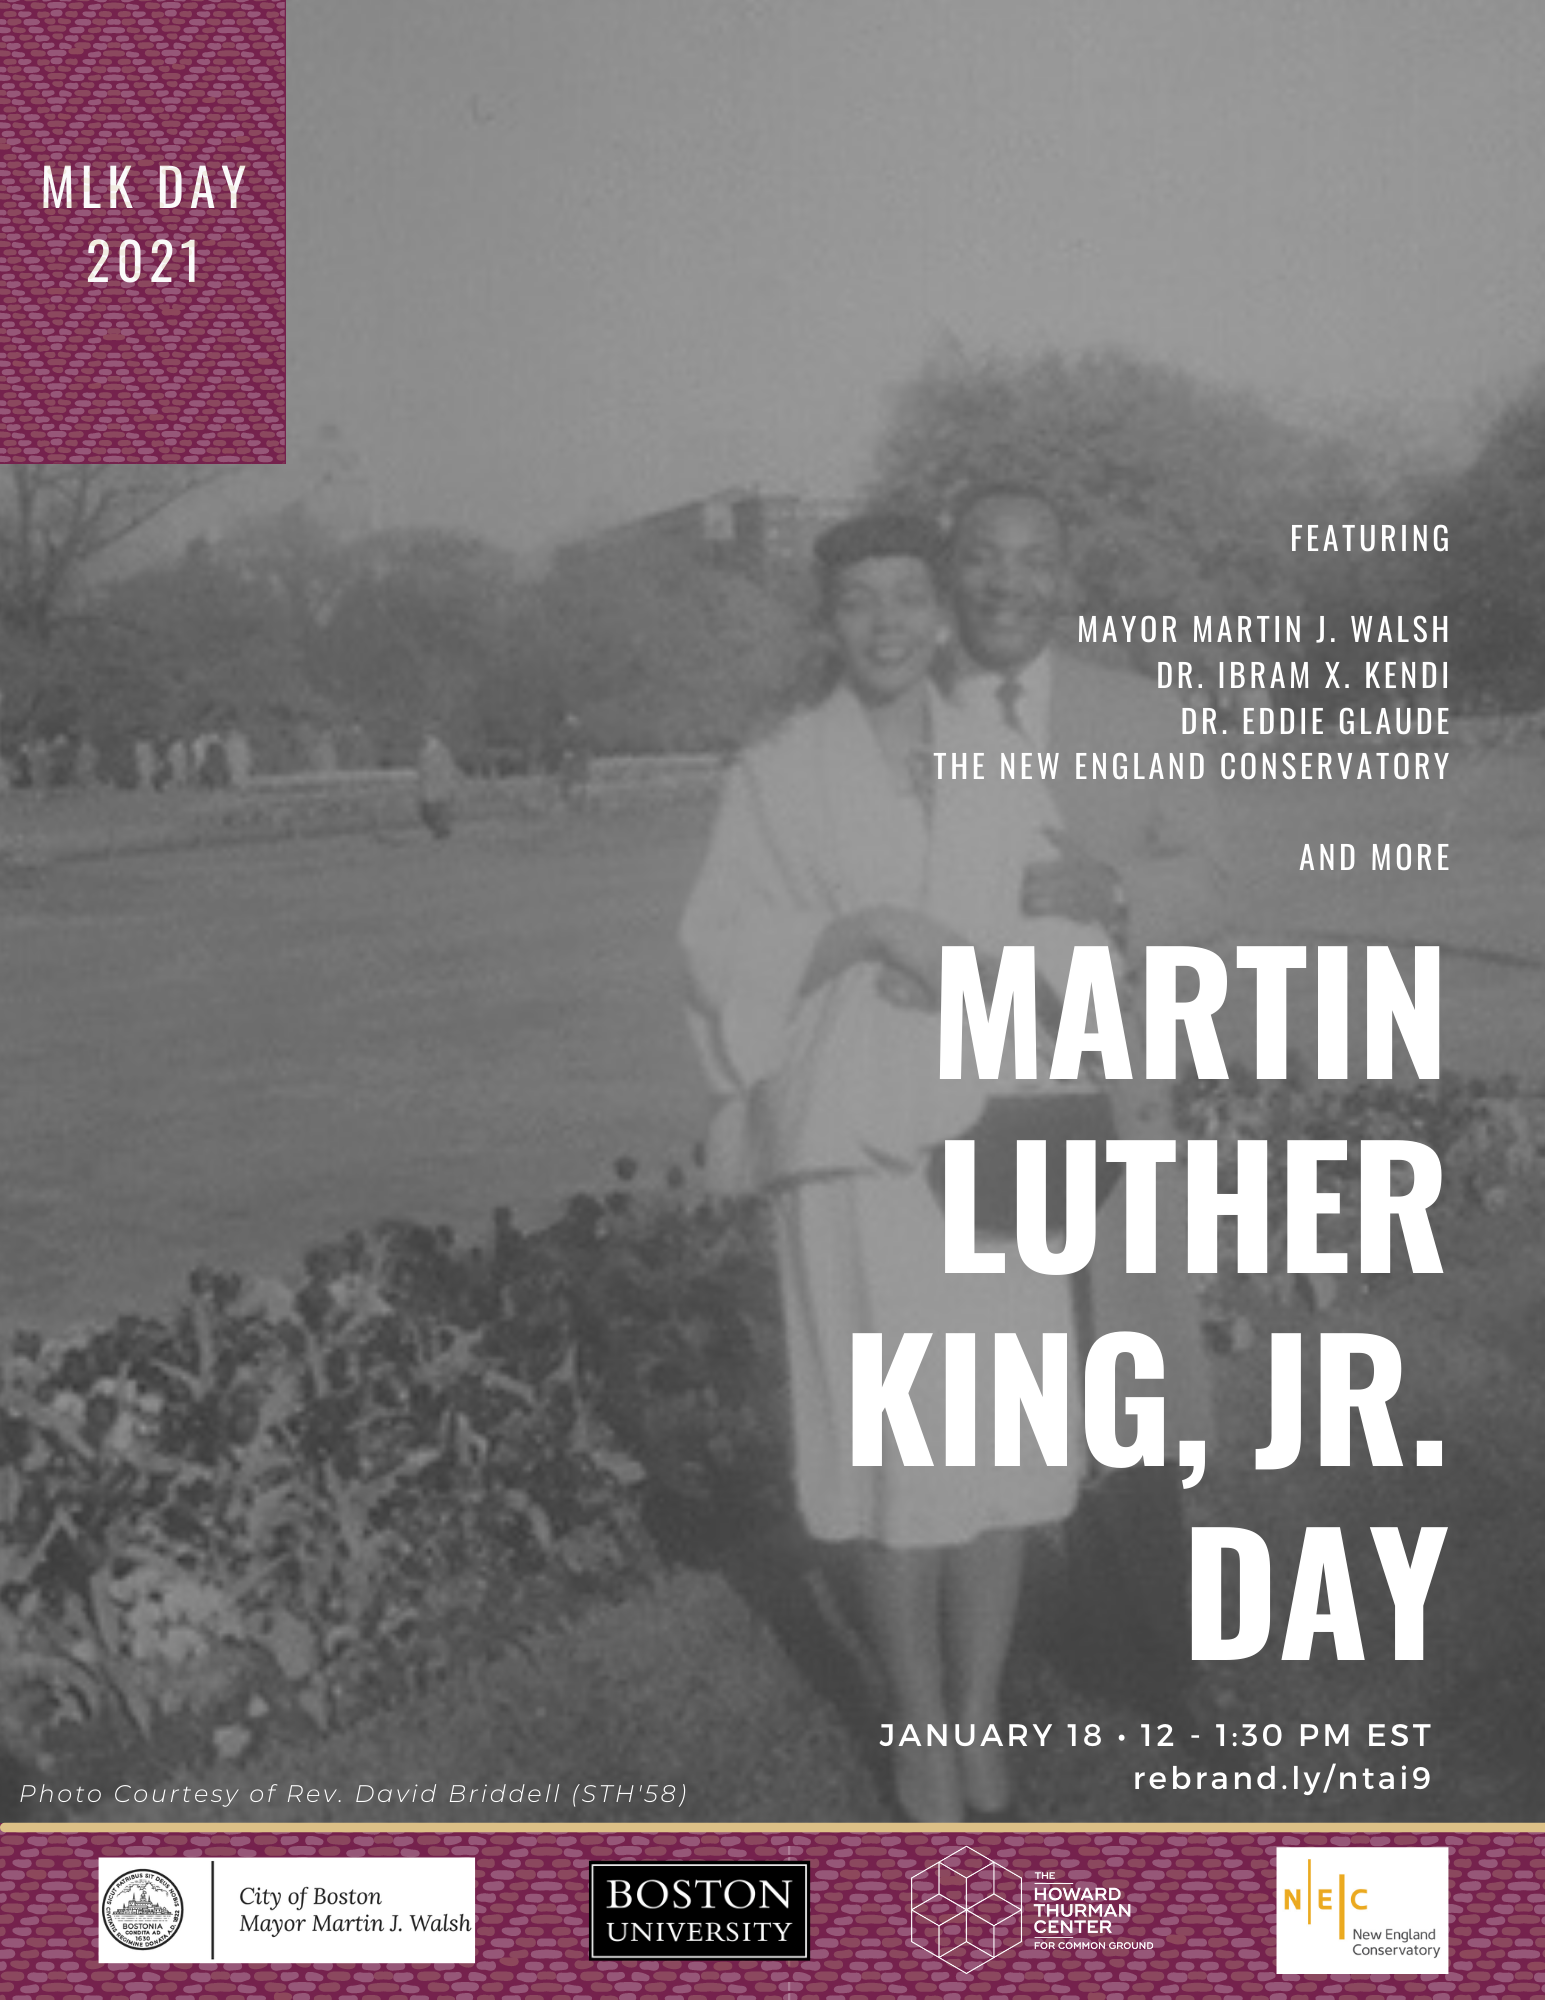 MLK 2021 Flyer Revised